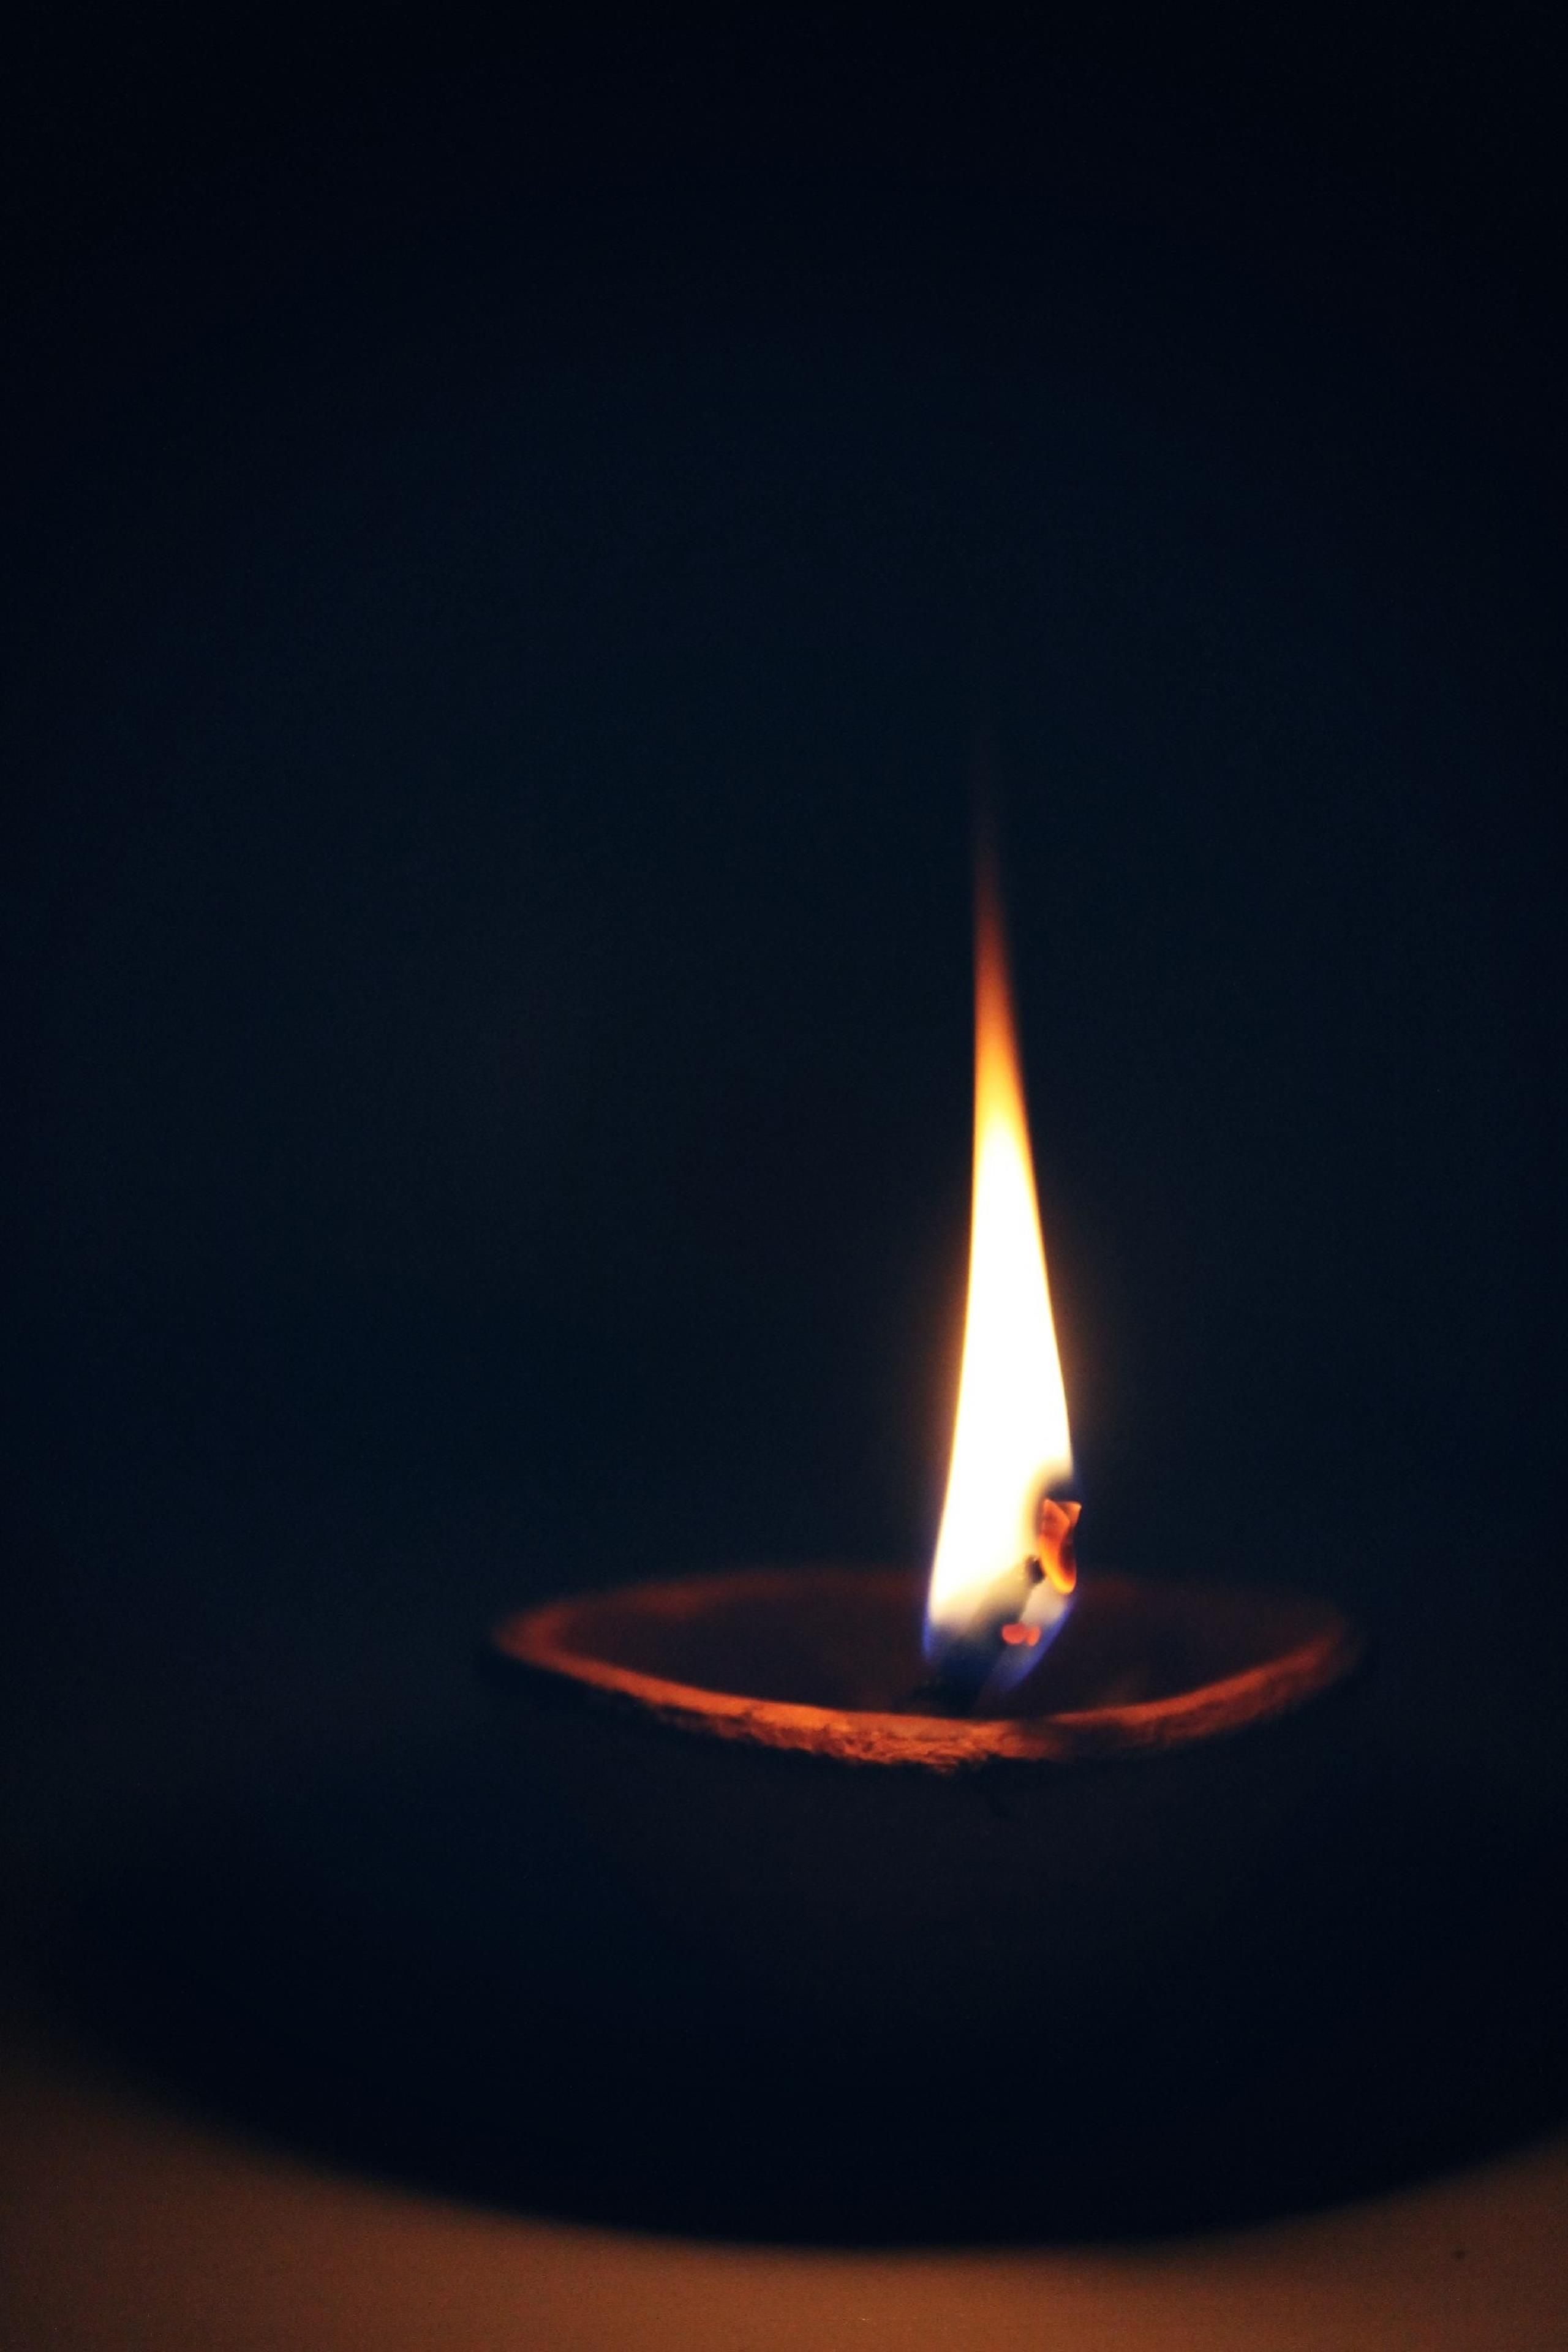 Amoled Candles Wallpaper Candle Photography Dark Candles Wallpaper Candles Photography Wallpaper candle close up flame dark